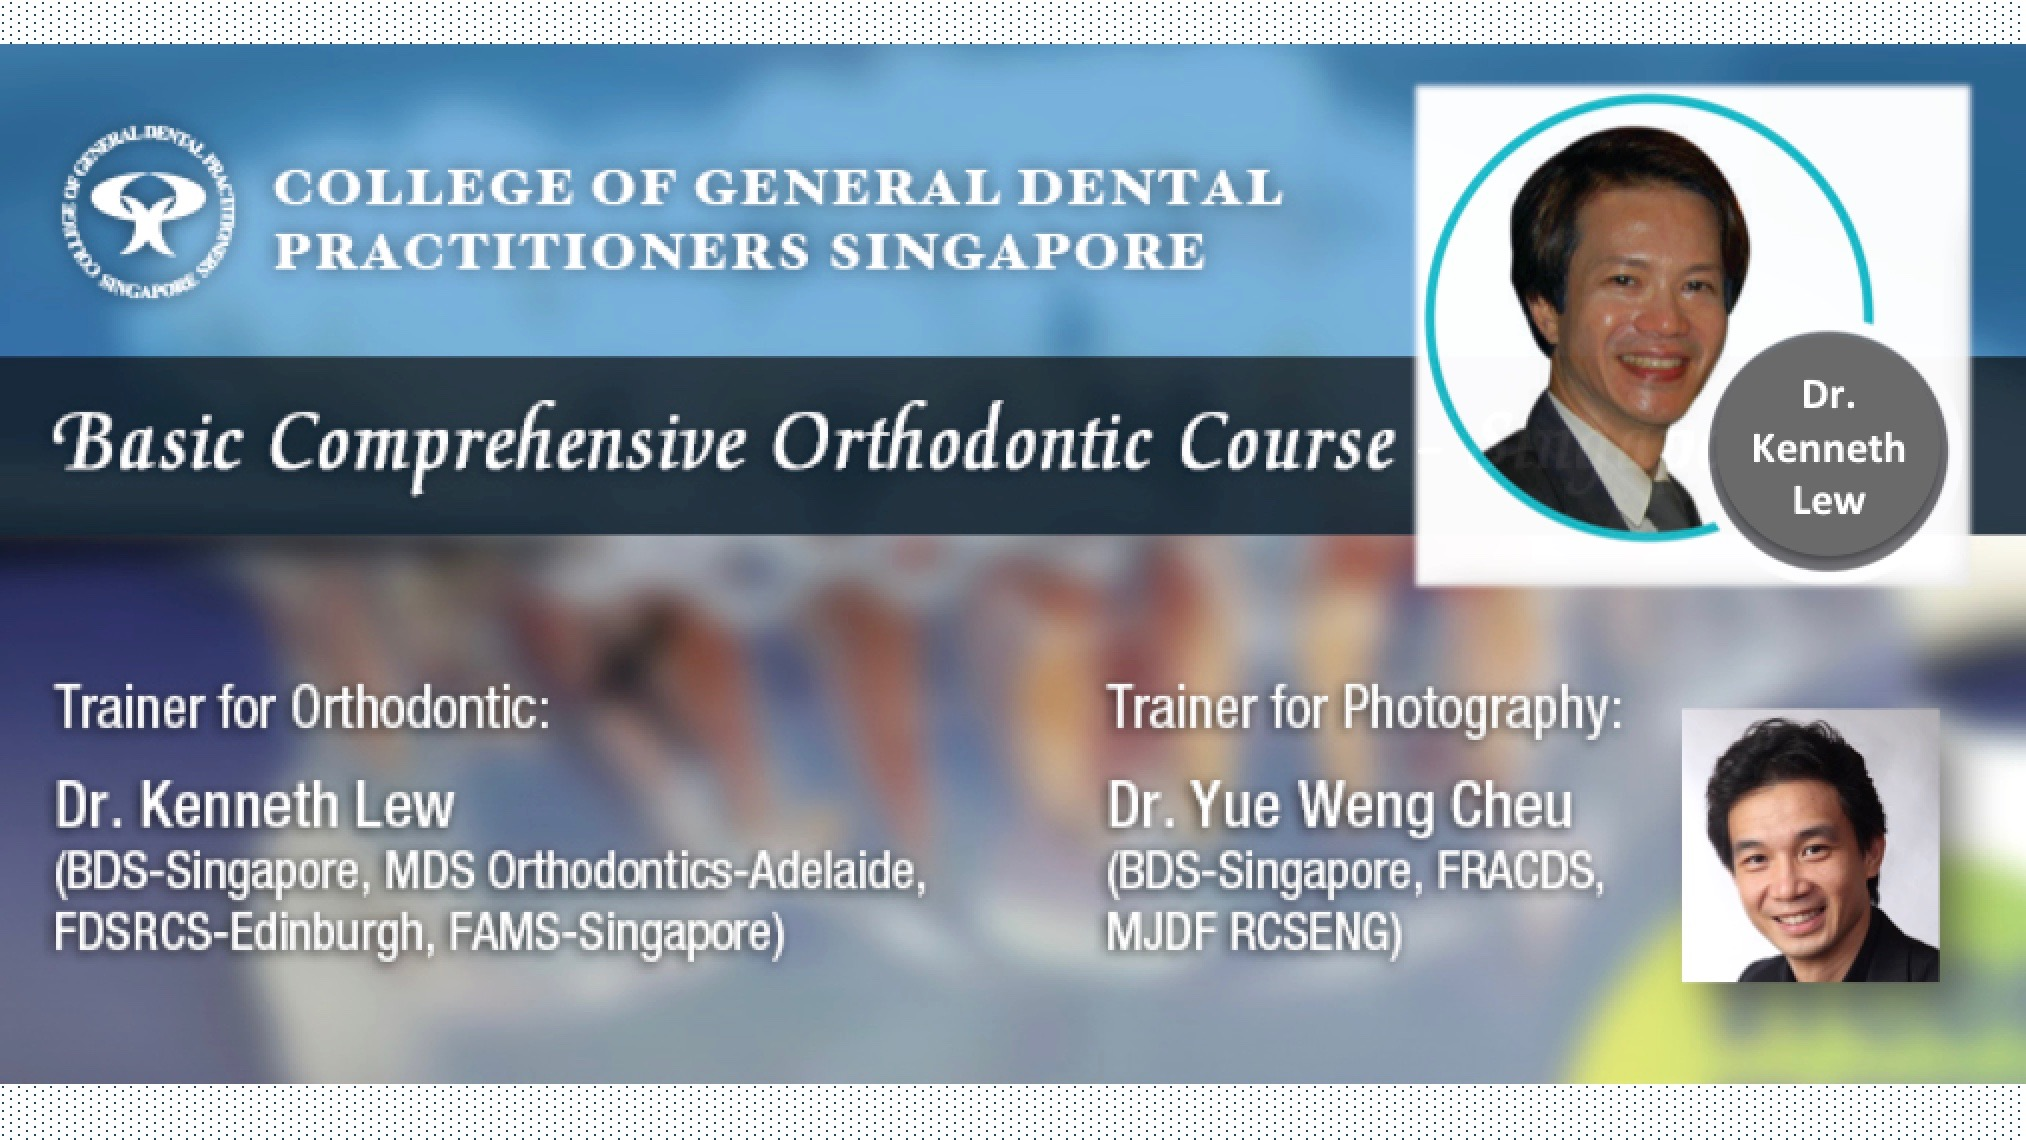 Basic Comprehensive Orthodontic Course by Dr Kenneth Lew (Group 17)